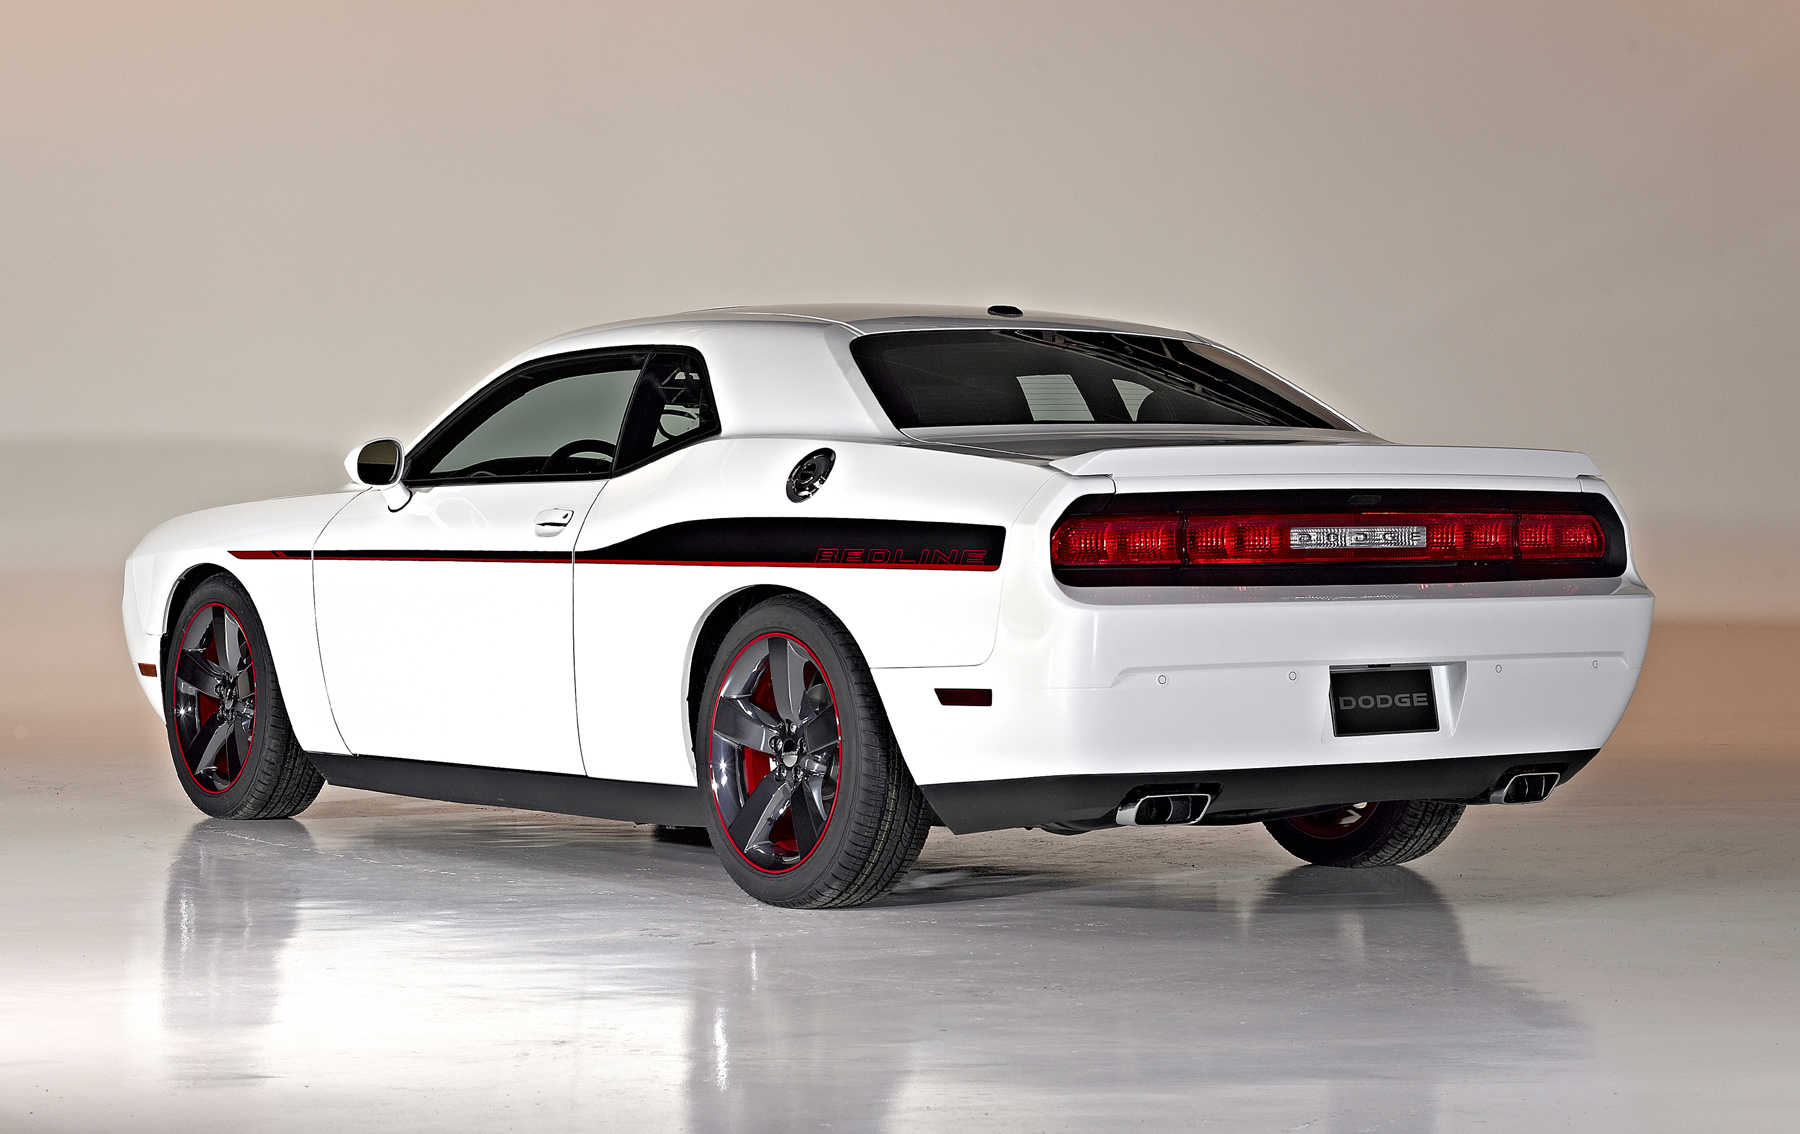 2014 Dodge Challenger R/T Redline: New car reviews | Grassroots ...